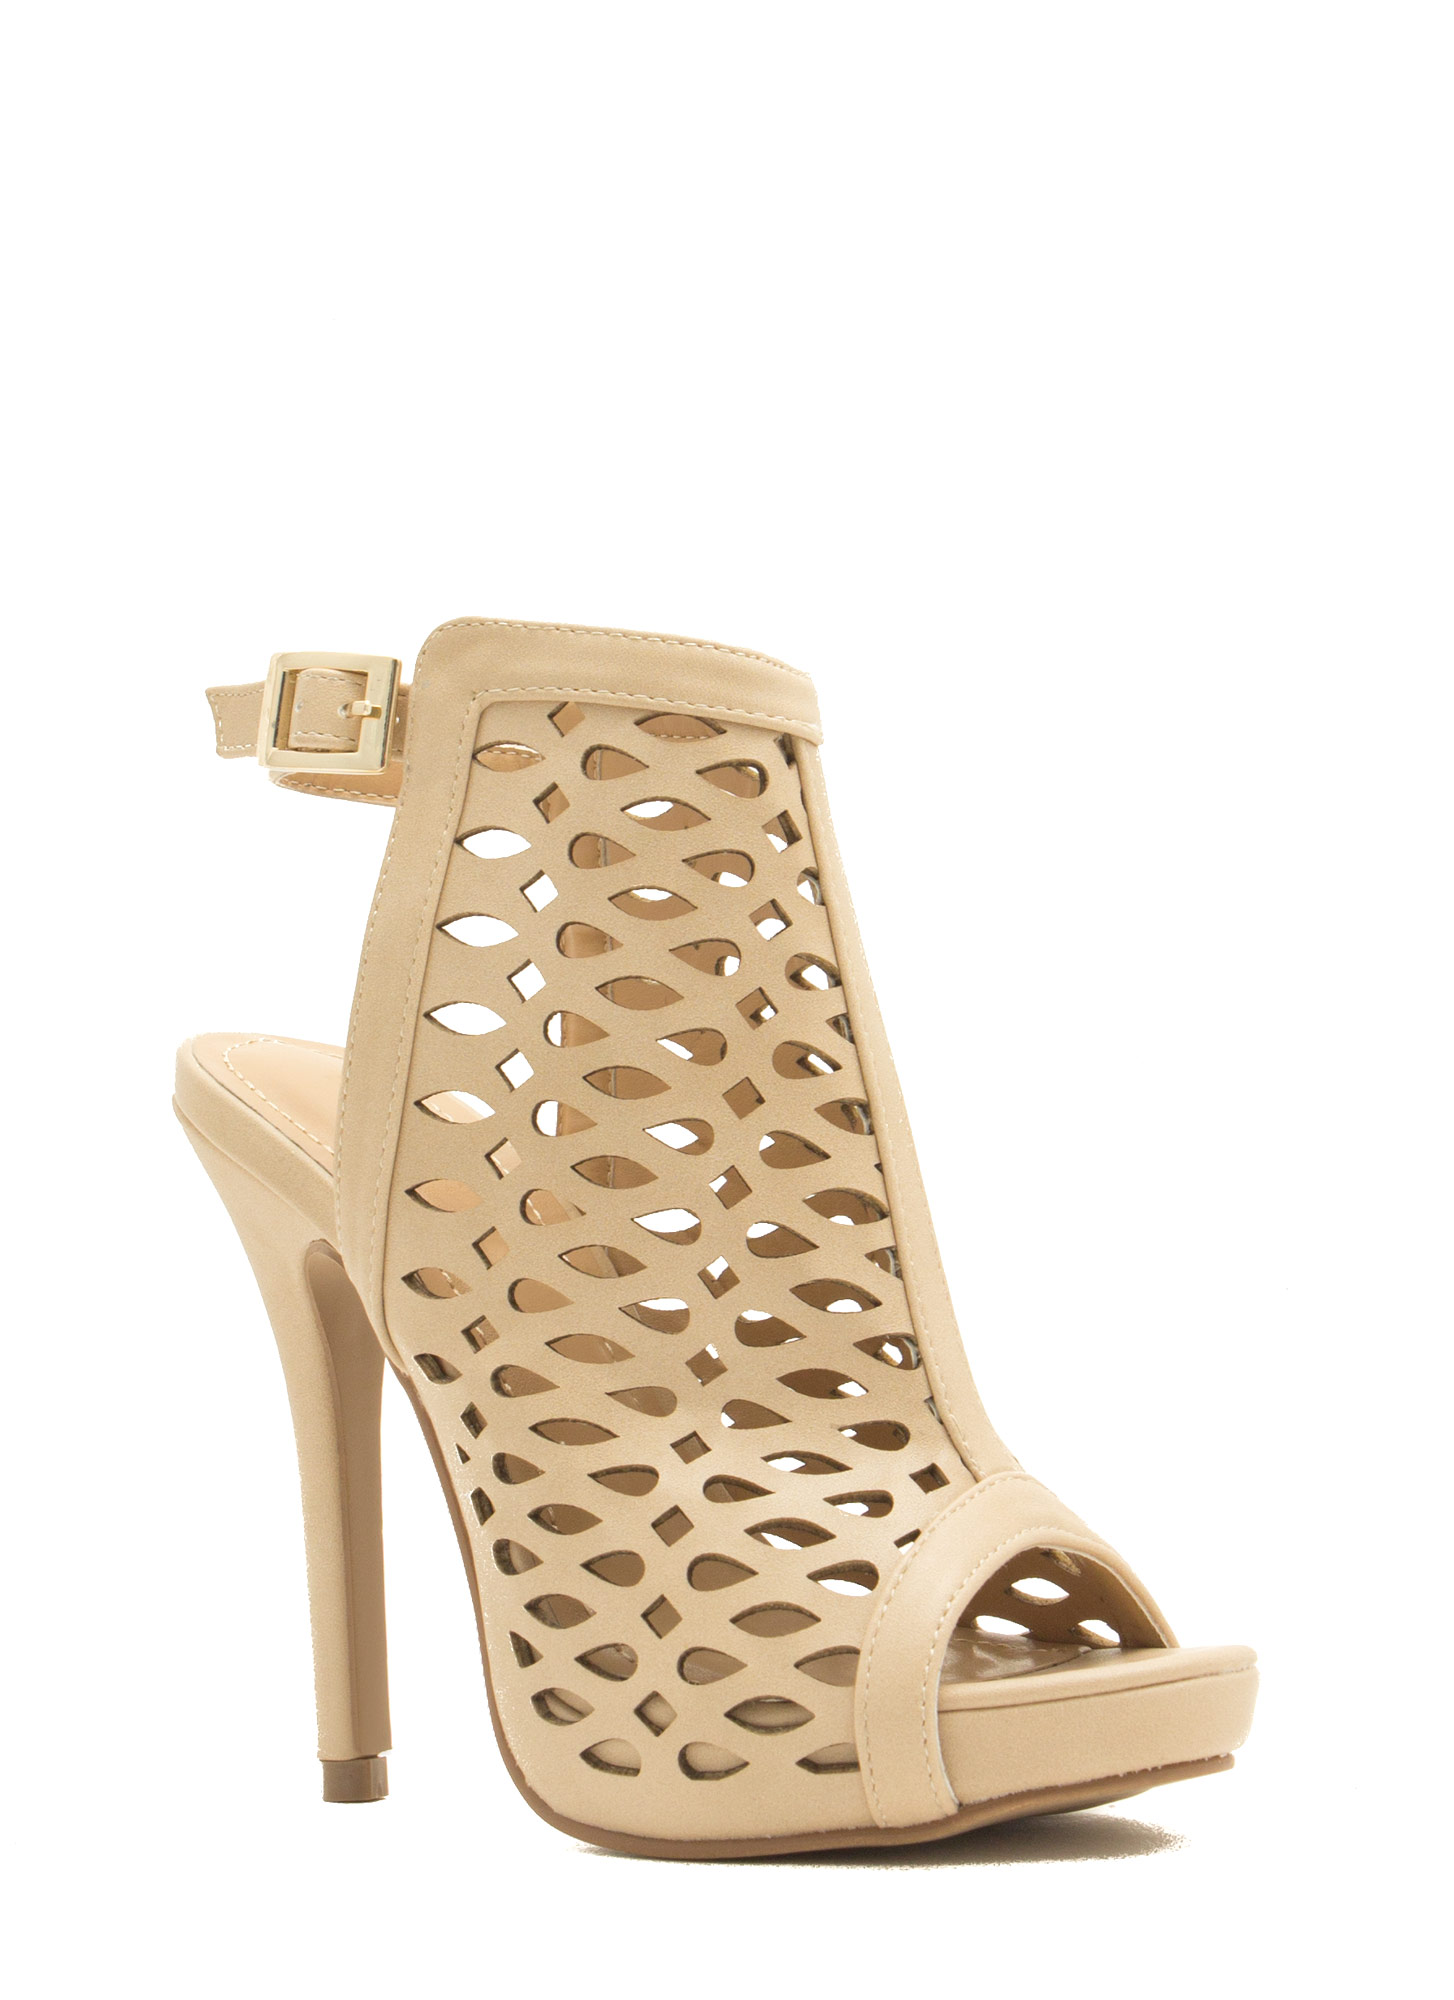 Marquis N Teardrop Cut-Out Heels NUDE